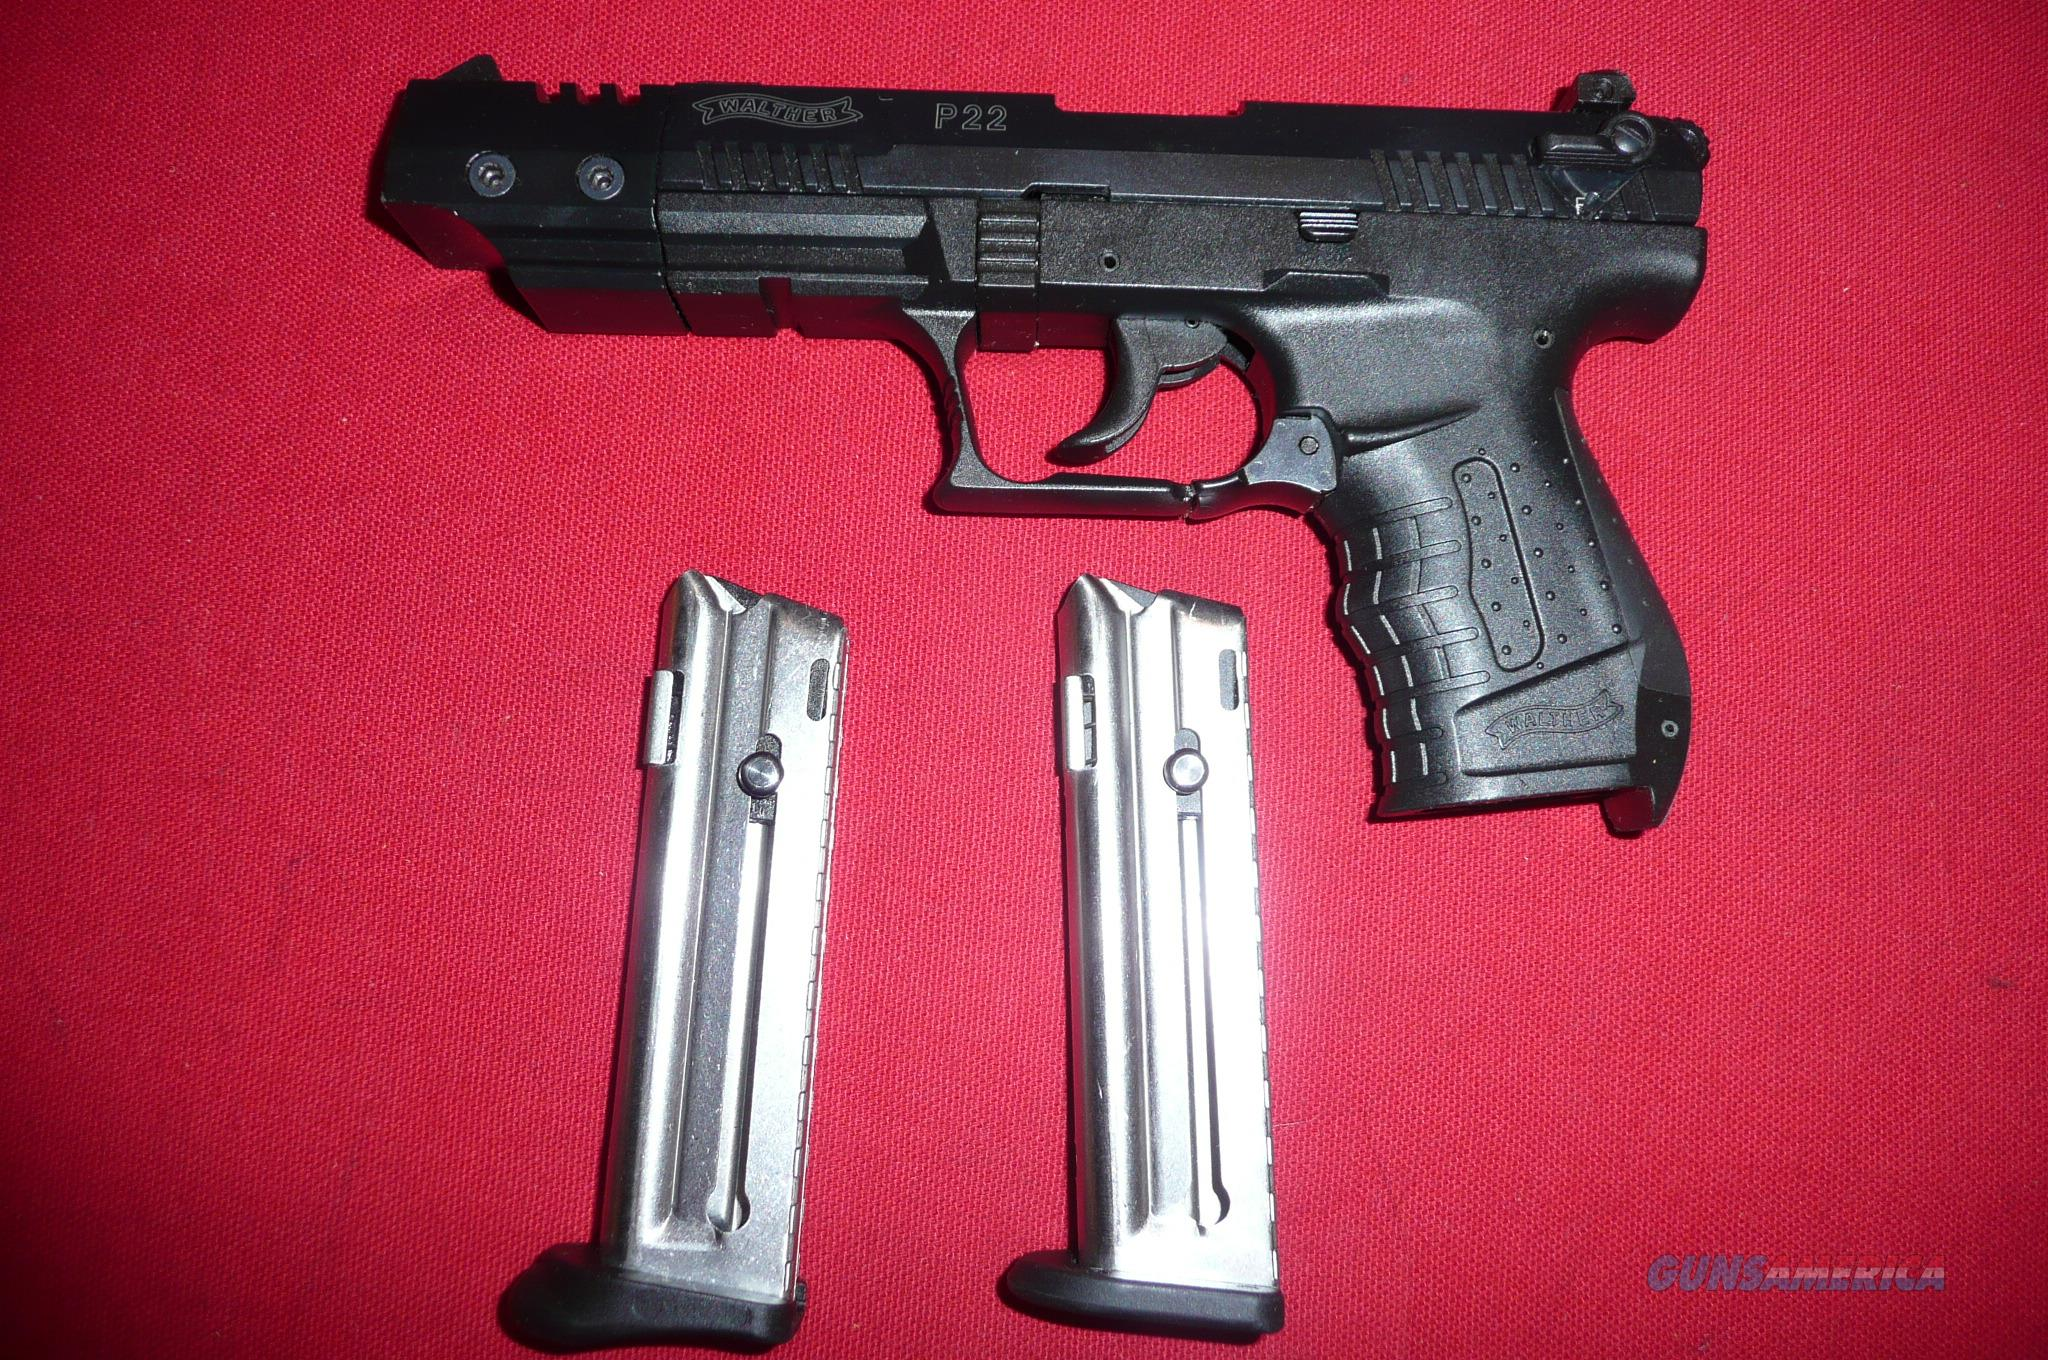 WALTHER  P22 TARGET NEW UNFIRED NO BOX SER# N063798  Guns > Pistols > Walther Pistols > Post WWII > P22